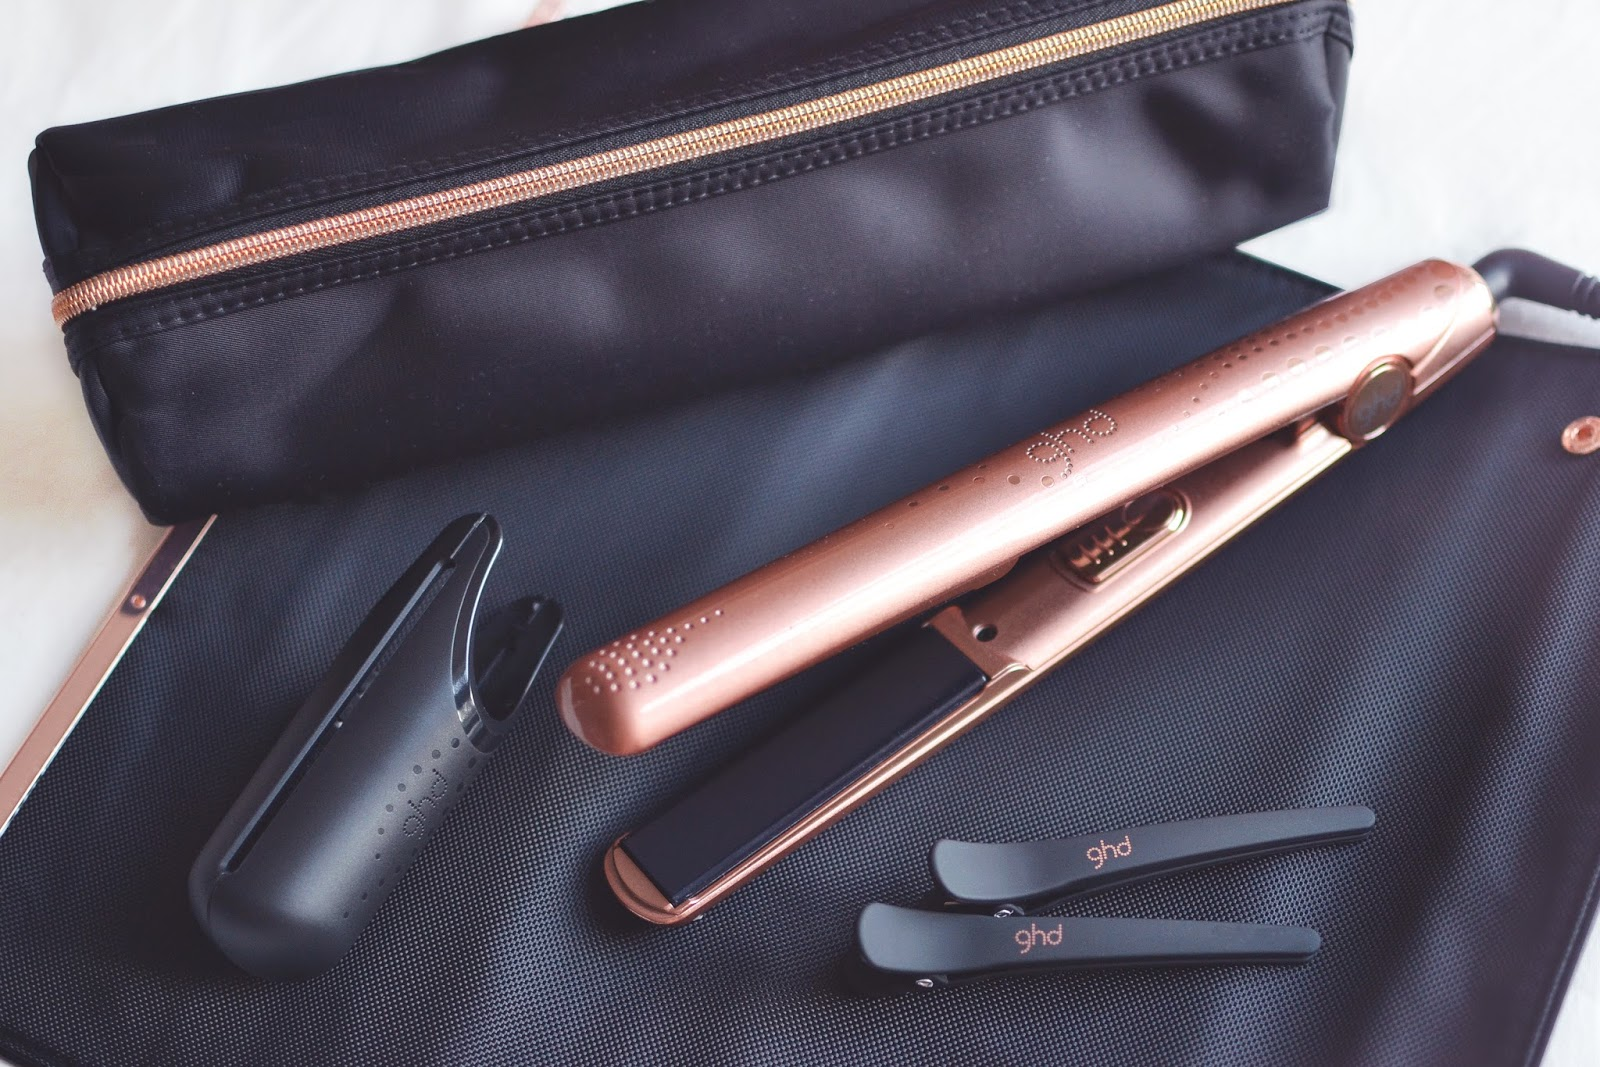 ghd hair straighteners, ghd rose gold straighteners